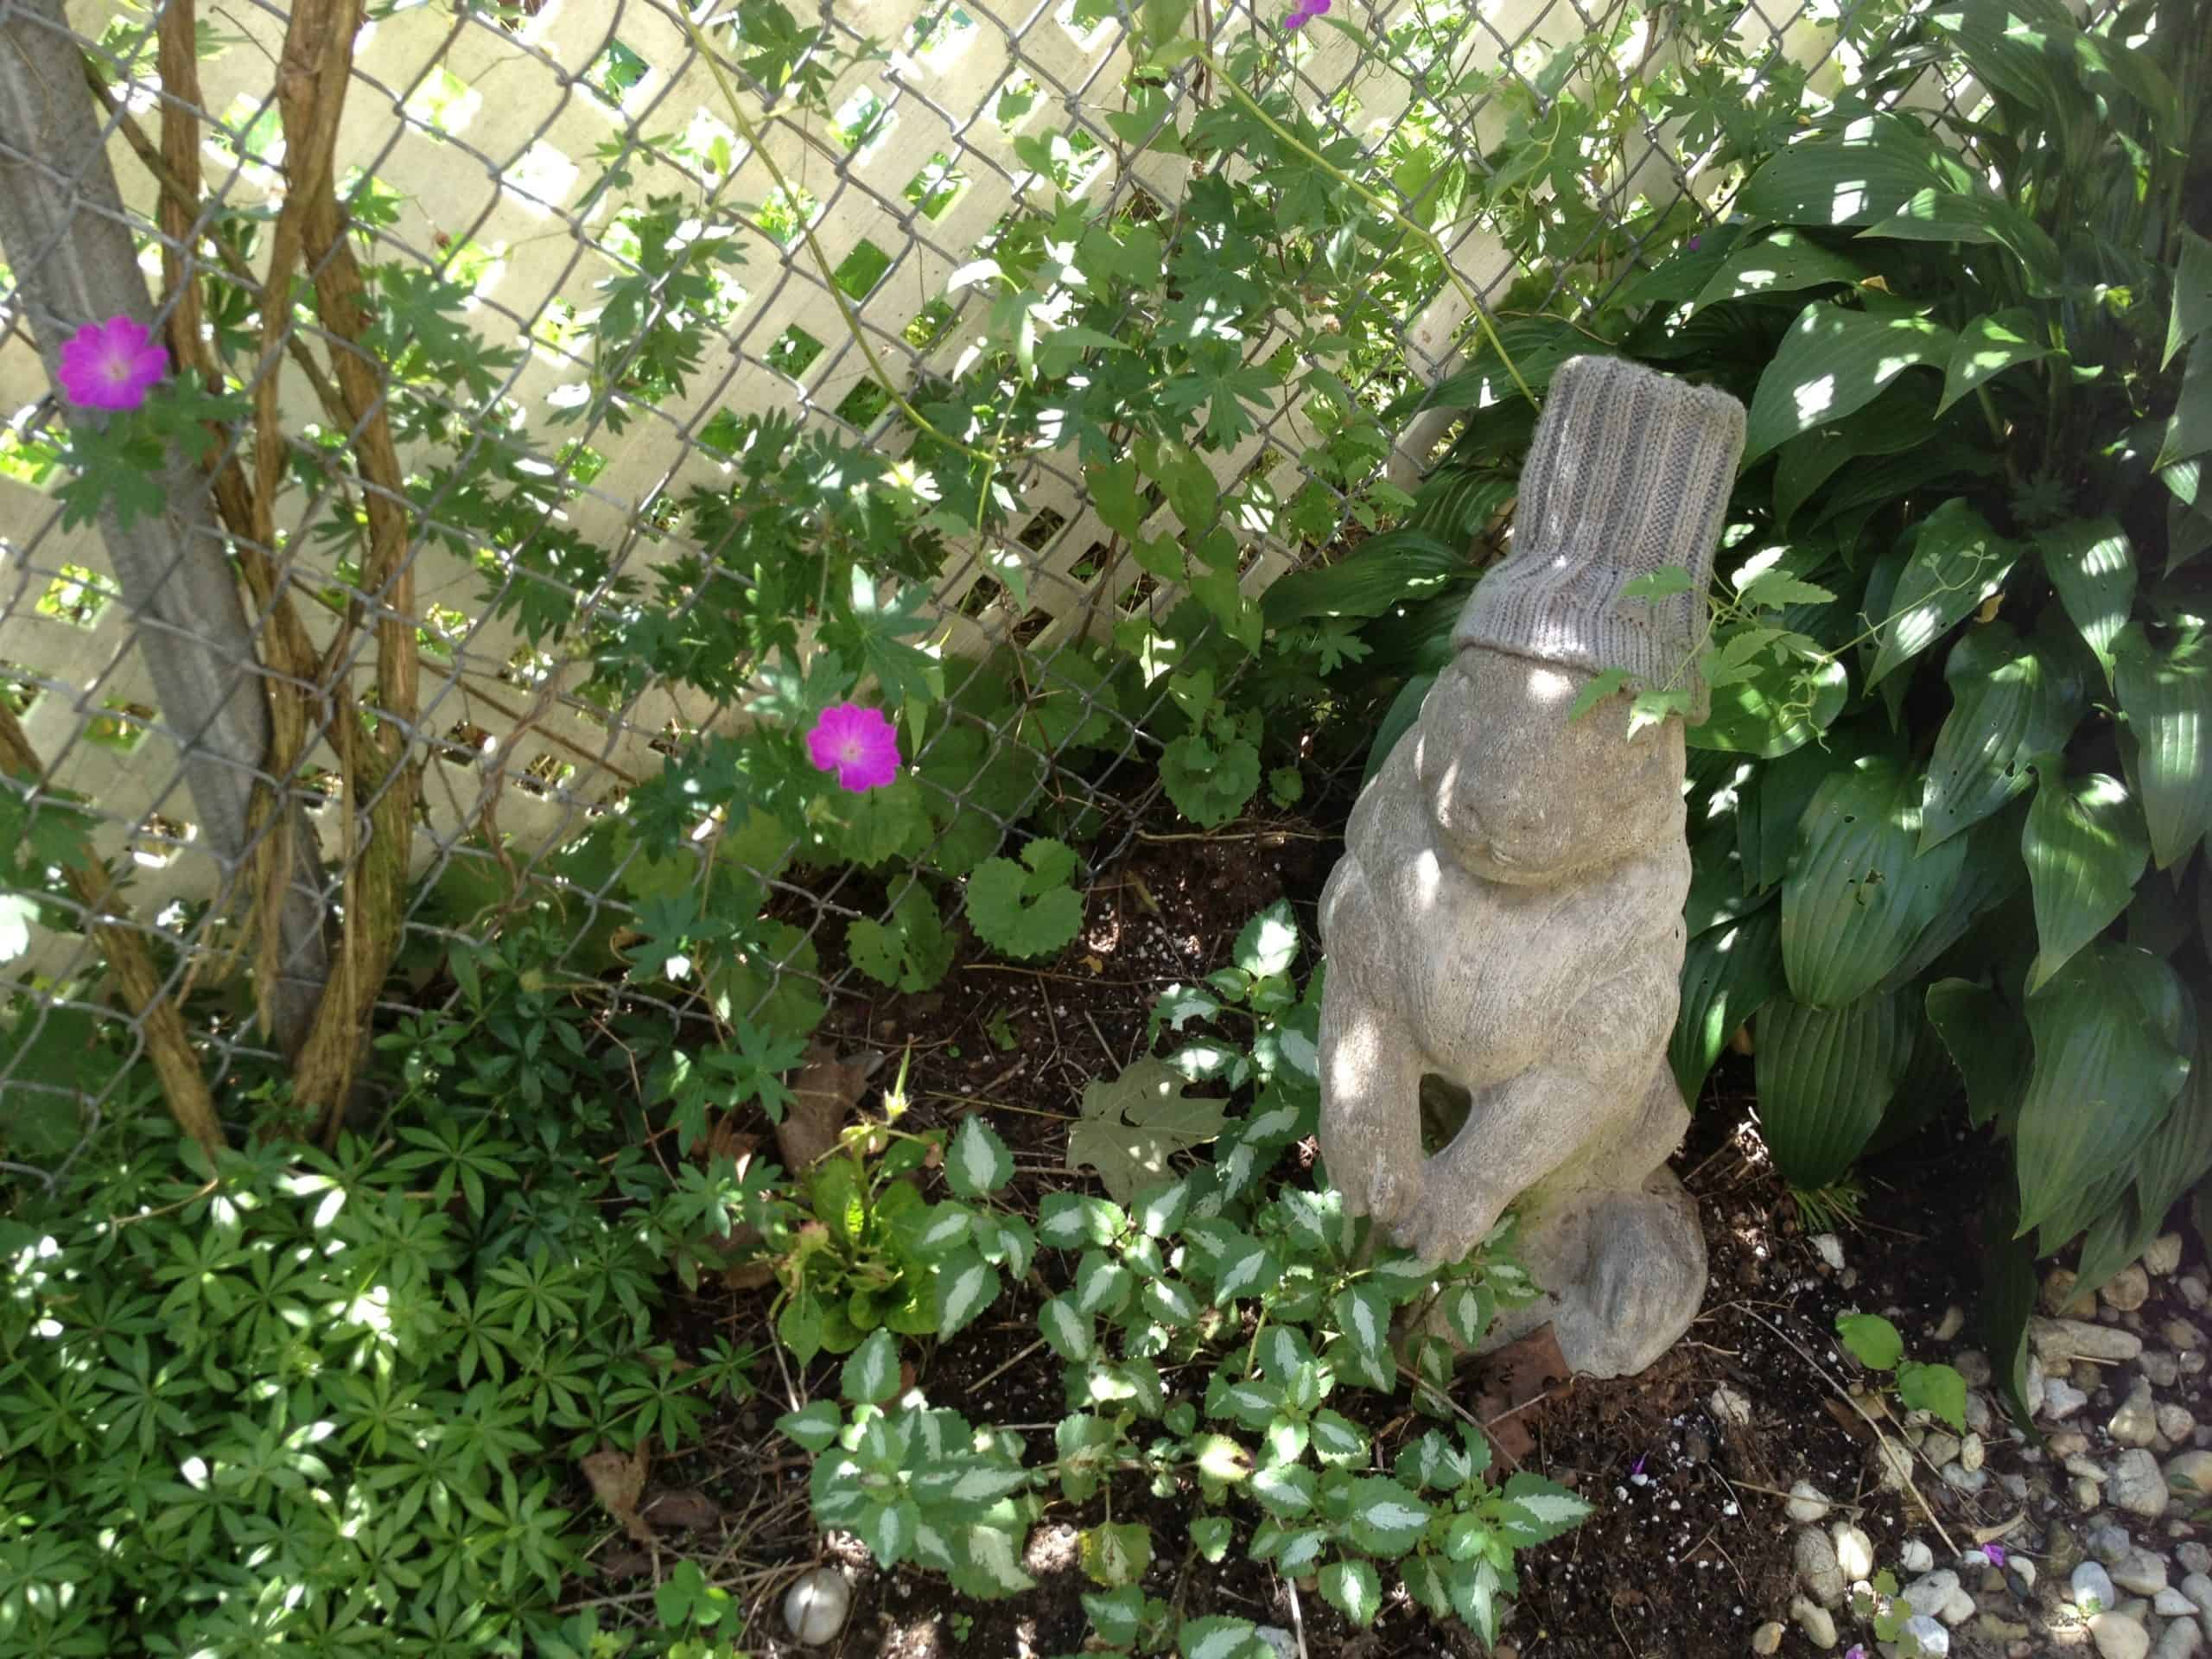 This garden had many beautiful sculptures and pieces of garden art, but this bunny, with a toque replacing his broken ears, was a favourite of mine.